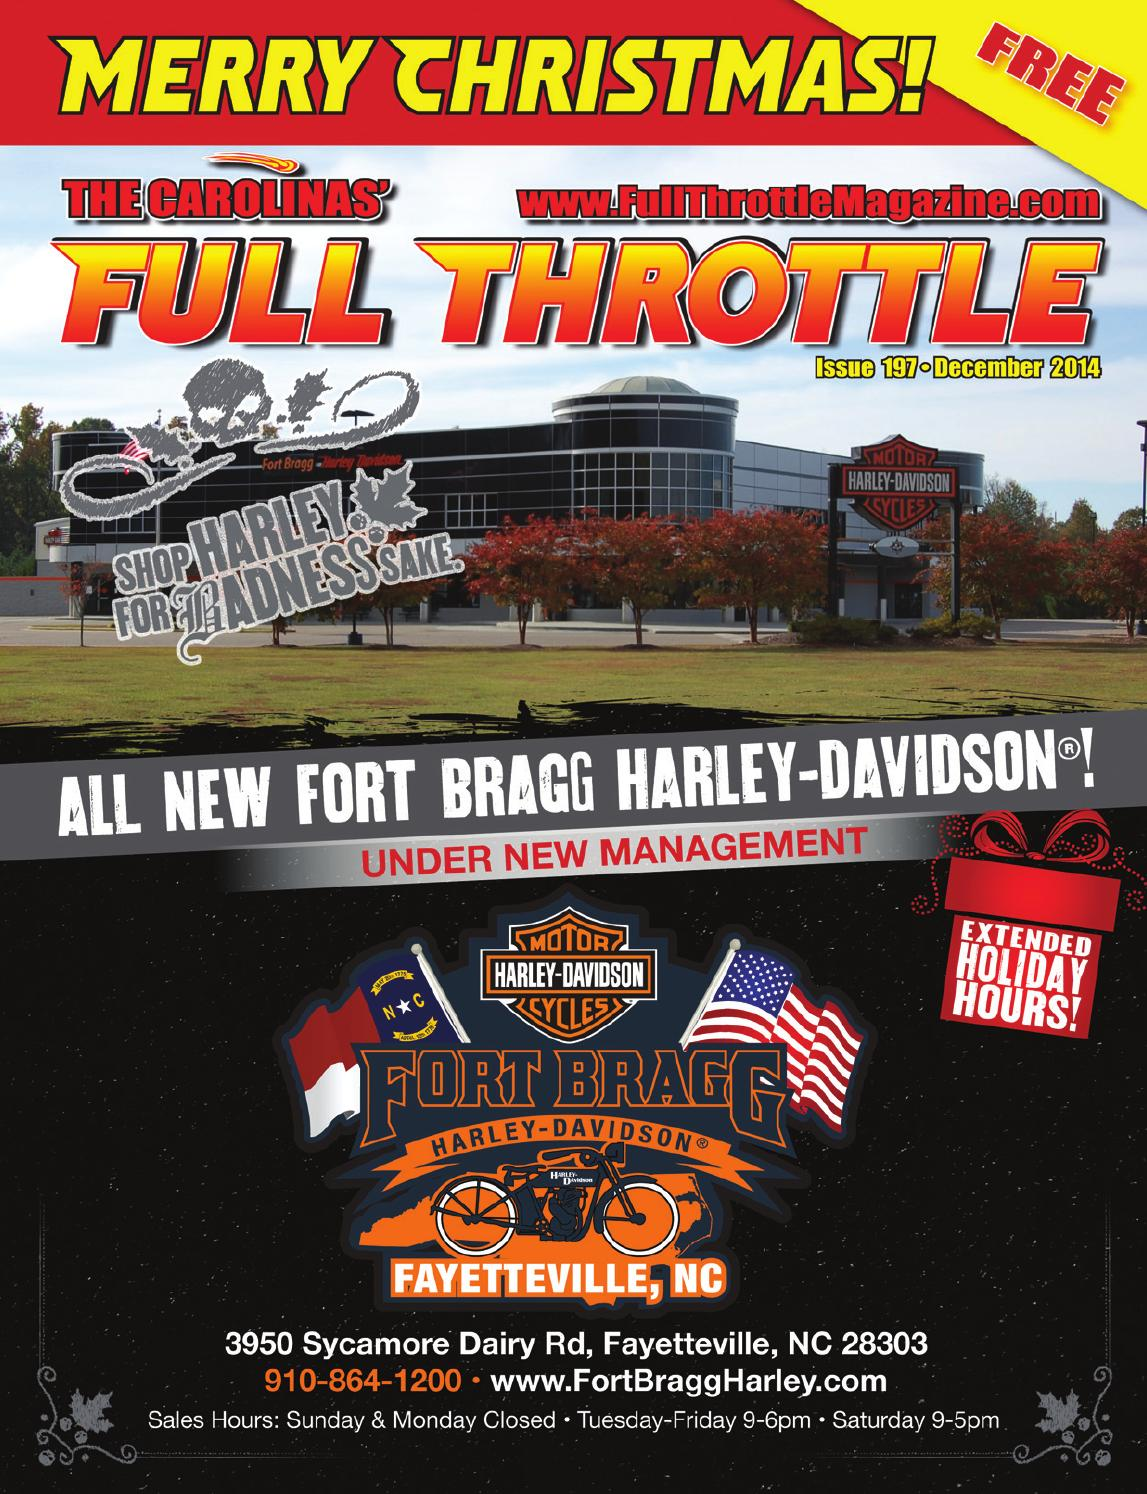 December 2014 issue 197 by the carolinas 39 full throttle - Cruisin carolina magazine ...